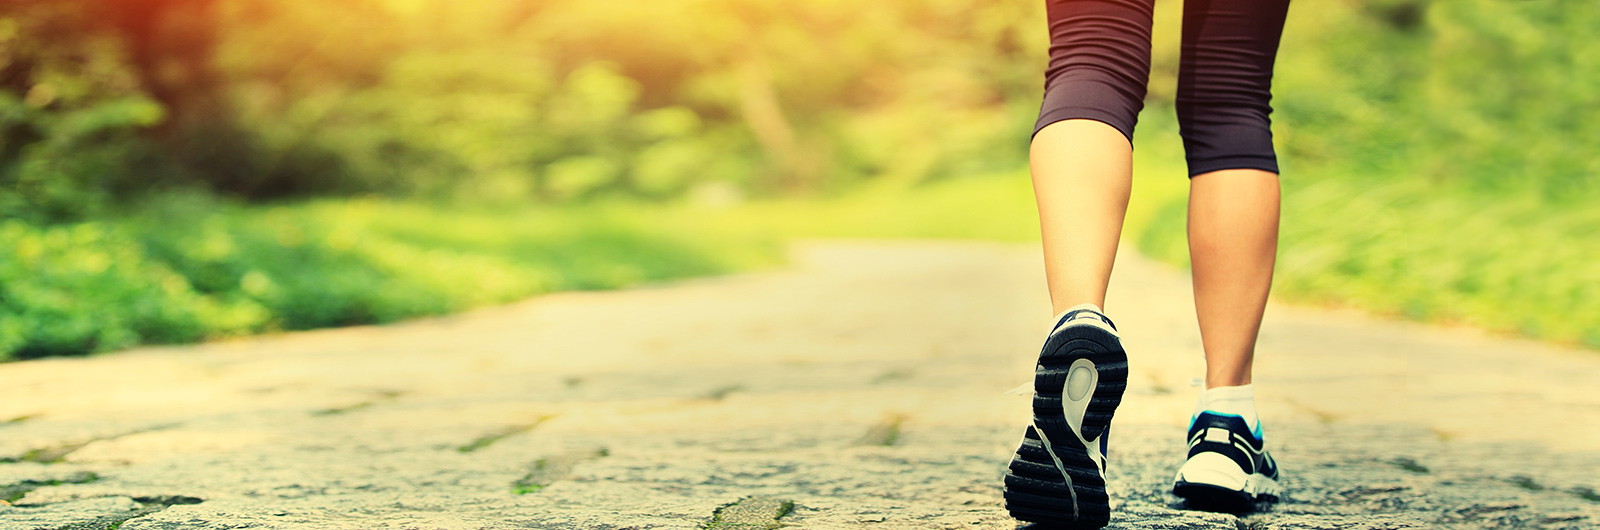 Woman running without leg pain or leg swelling after receiving varicose veins treatment